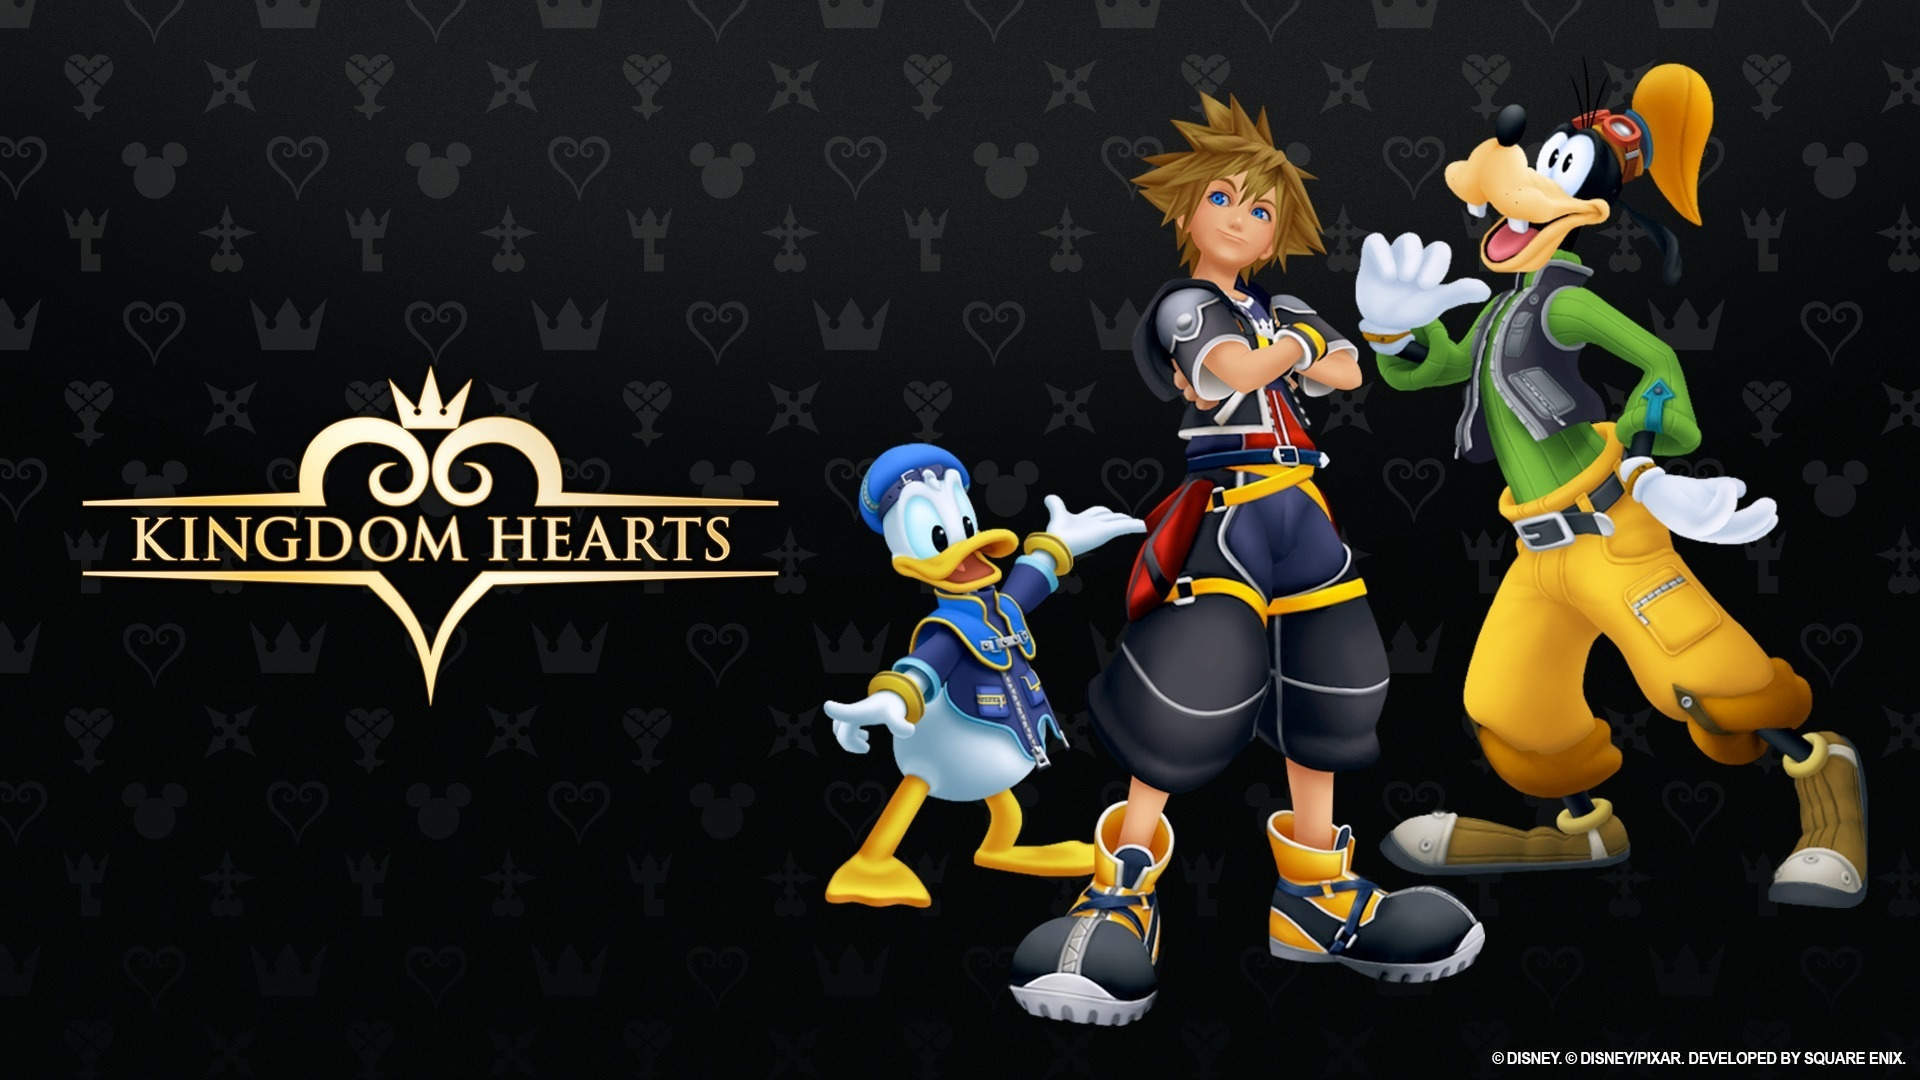 Kingdom Hearts Series Announced for Epic Games Store